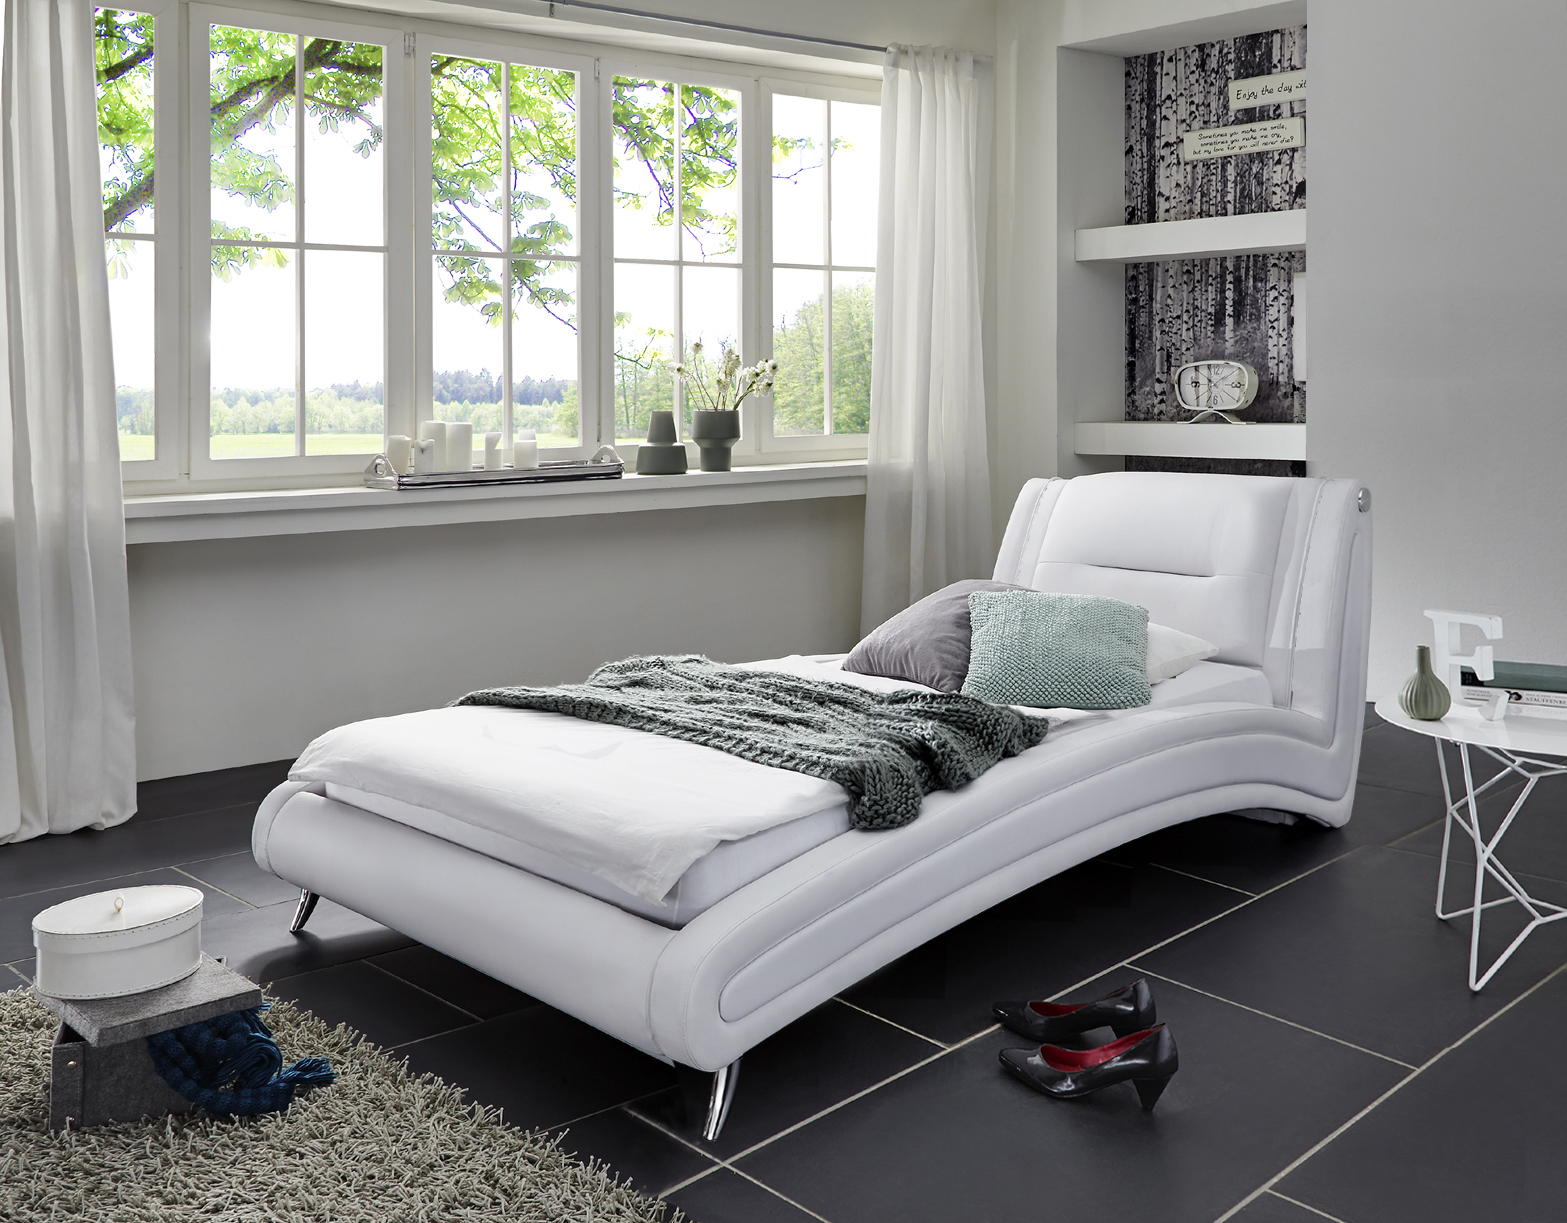 sam design bett 120 x 200 cm wei swing g nstig. Black Bedroom Furniture Sets. Home Design Ideas